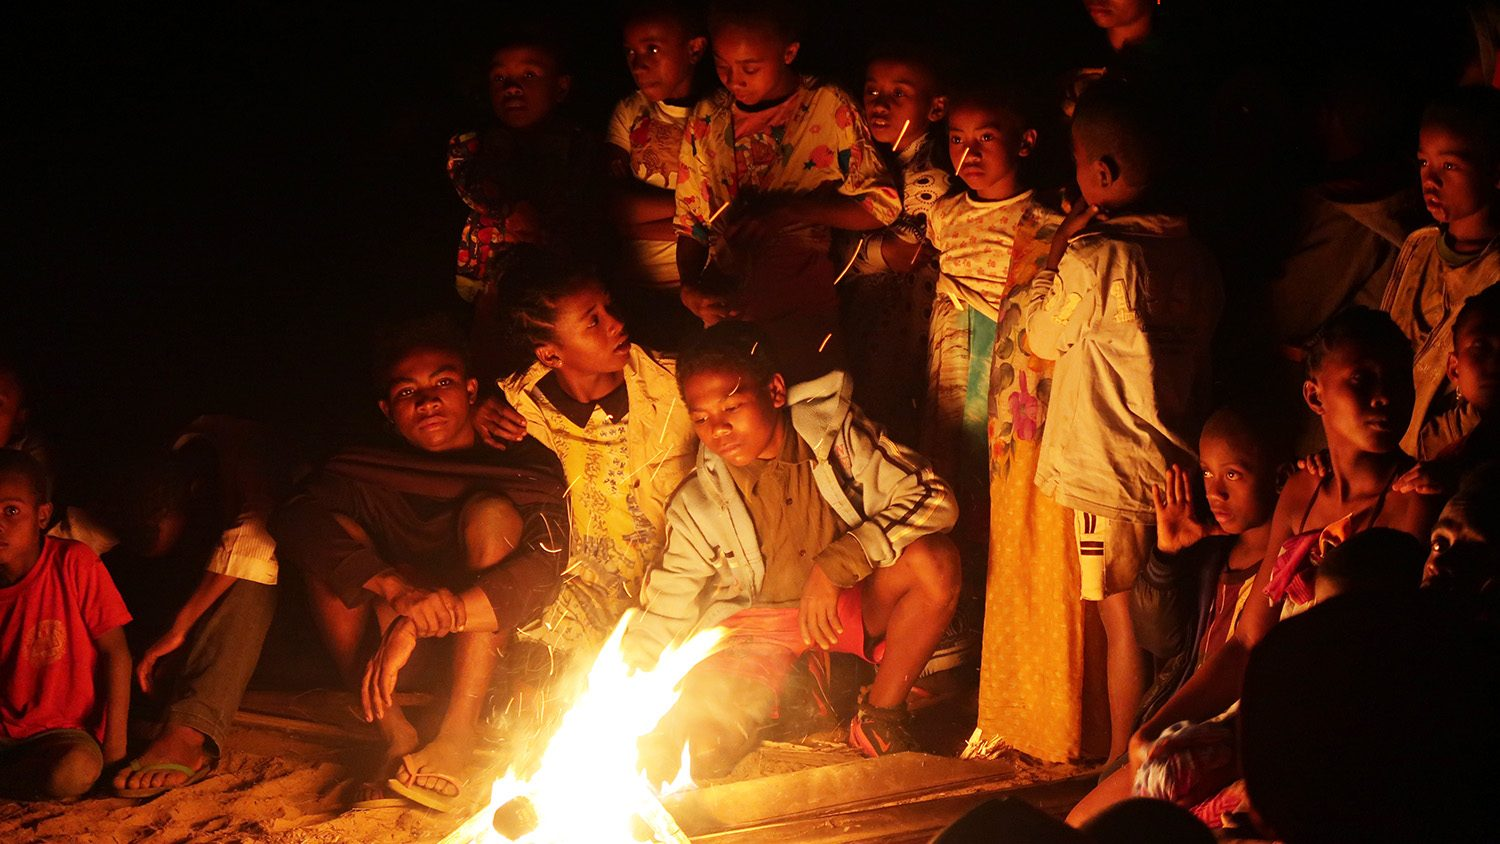 In the dark, children huddling near a fire